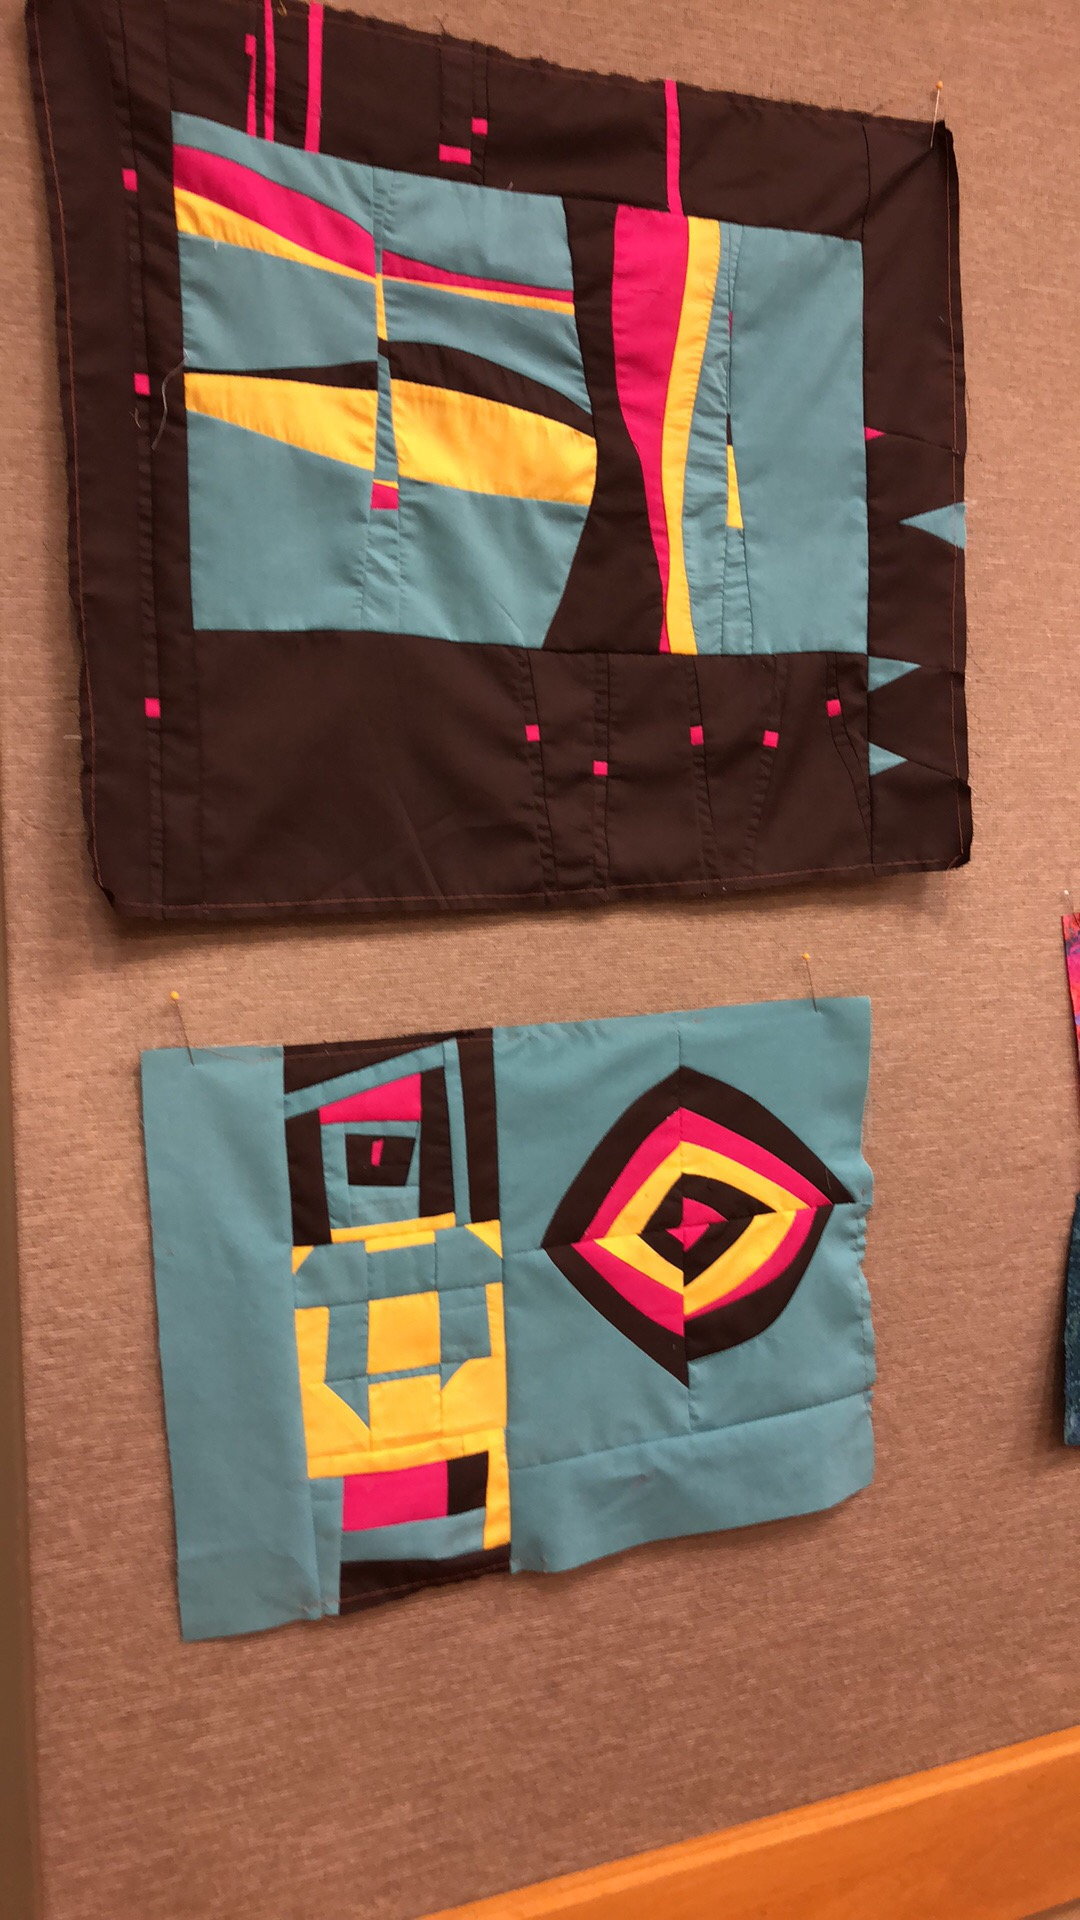 Compositions created during a recent workshop on intuitive piecing